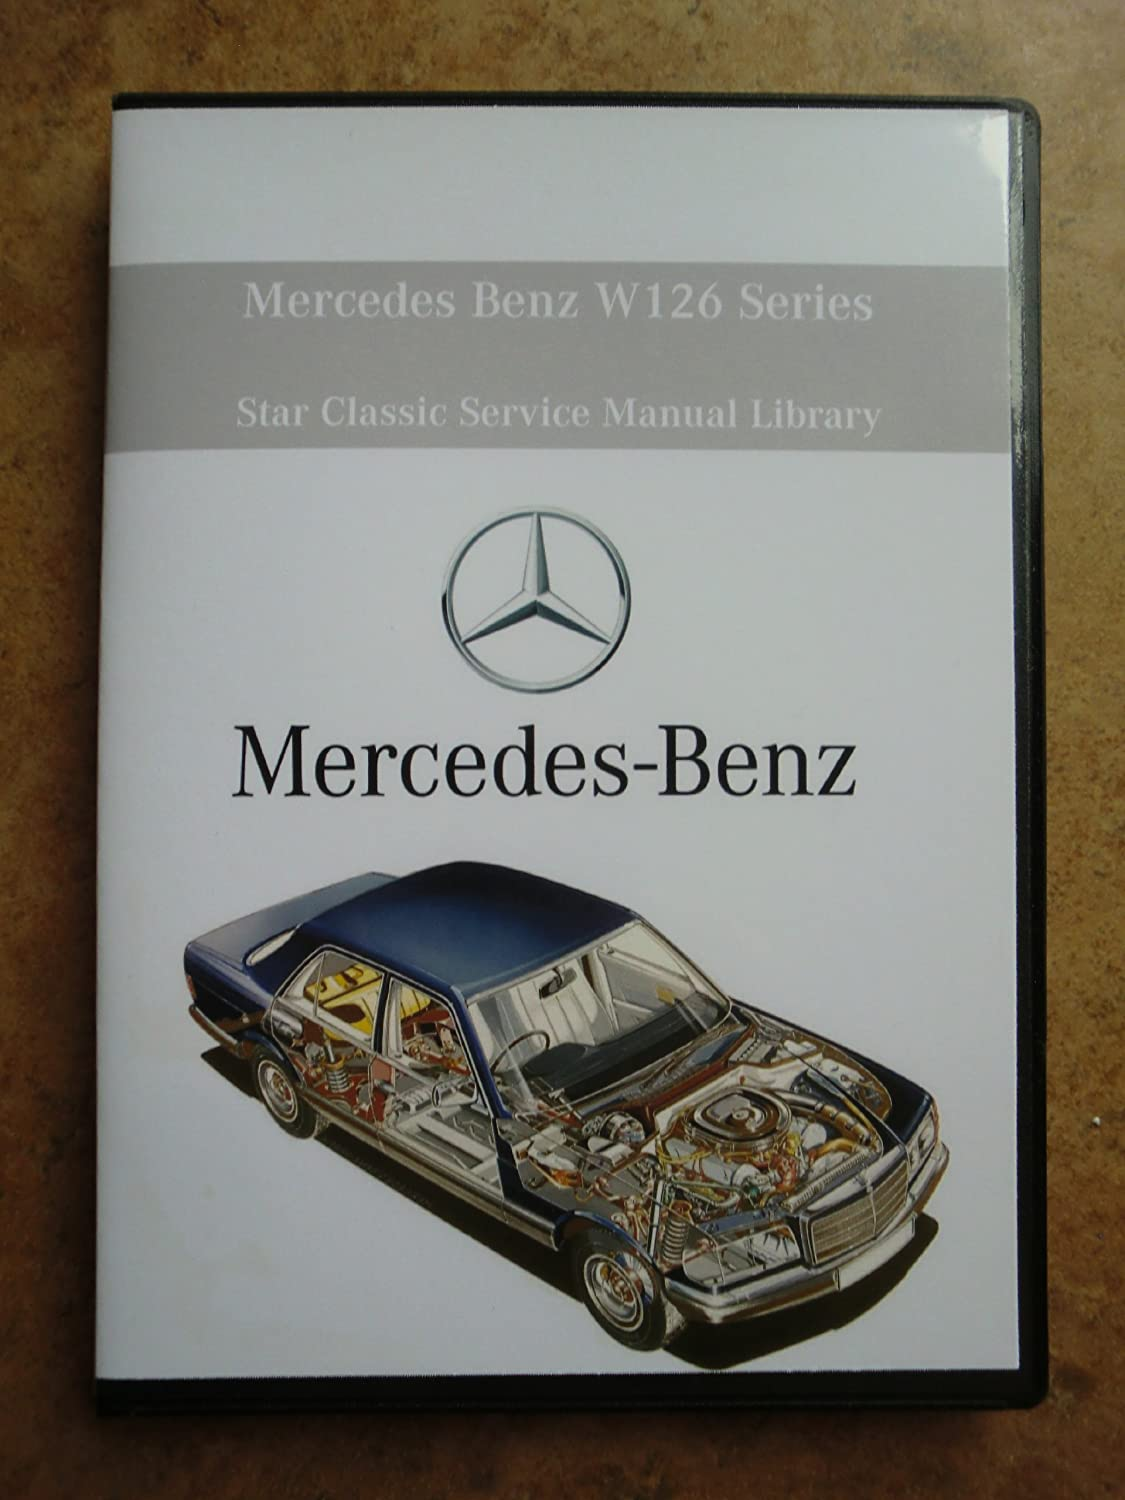 Mercedes Benz W126 Star Classic Service Manual Library CD Set, Diagnostic &  Test Tools - Amazon Canada